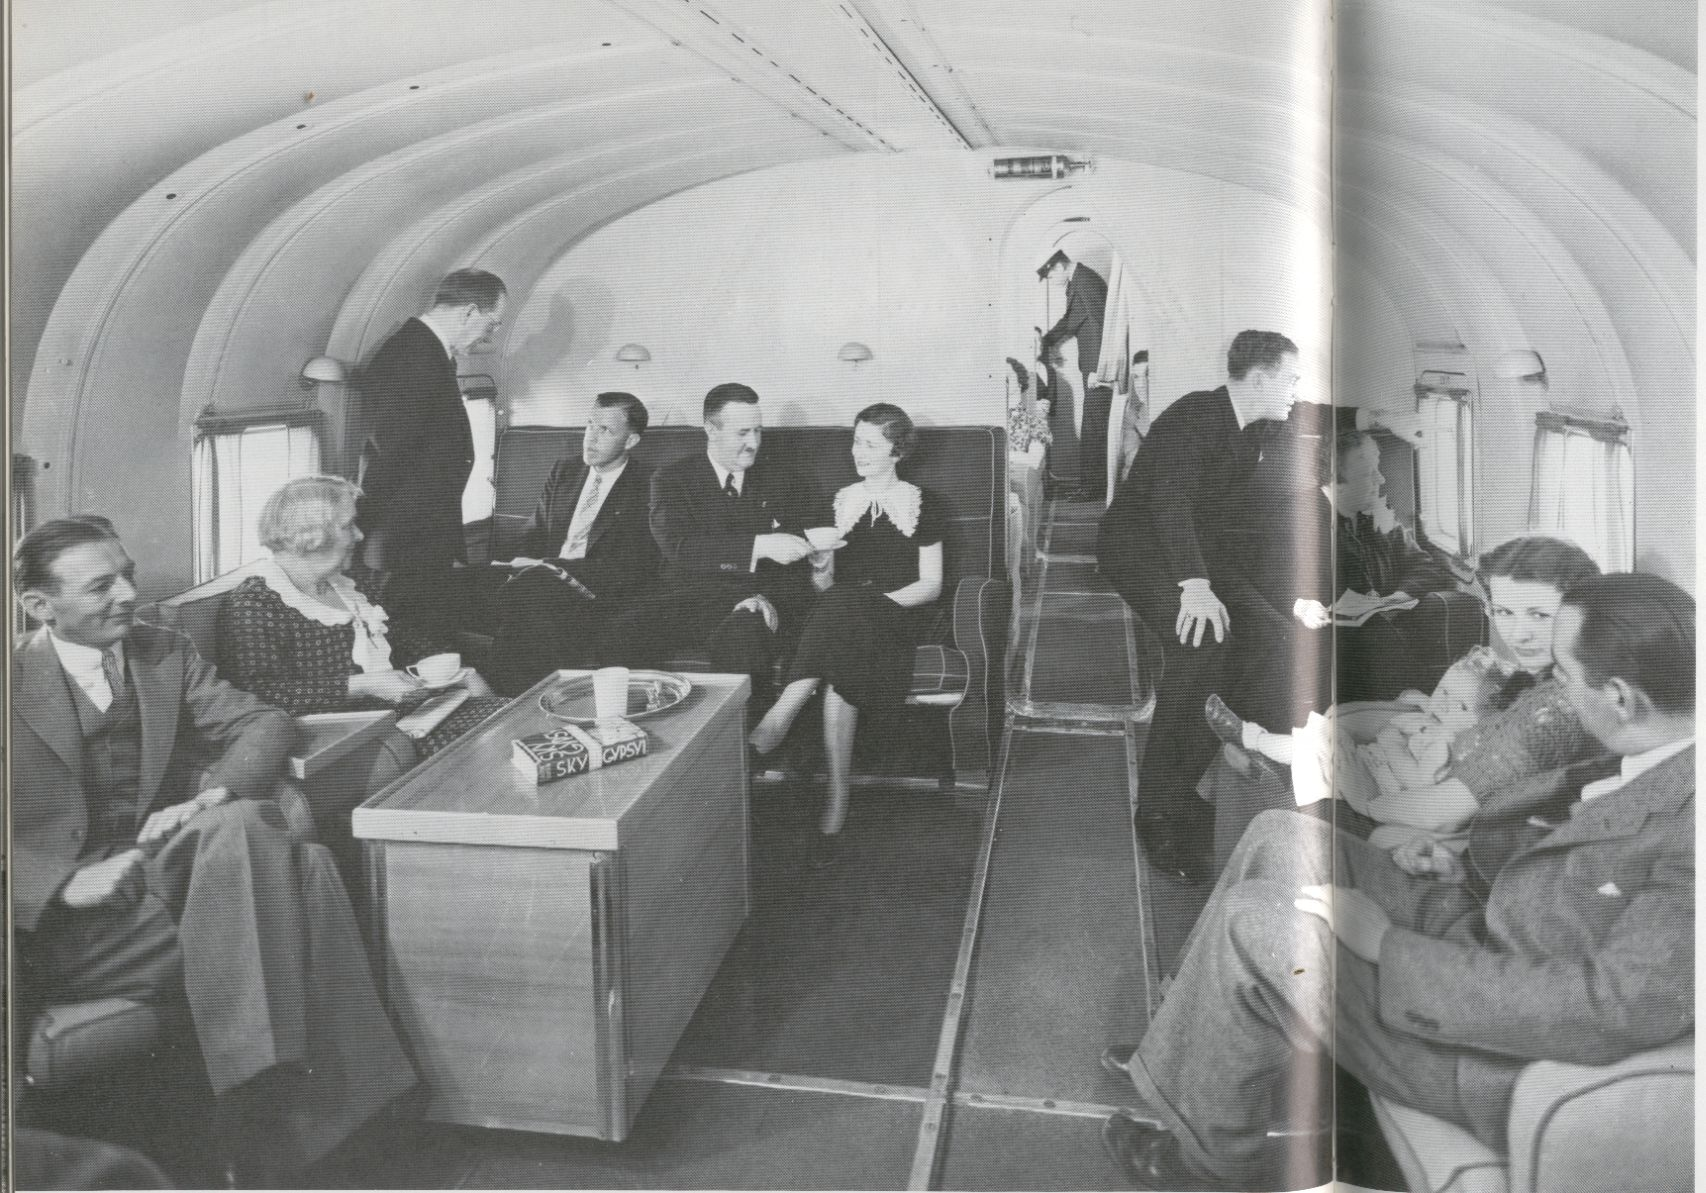 1930s Tea time in the main cabin of a Martin M130 flying boat